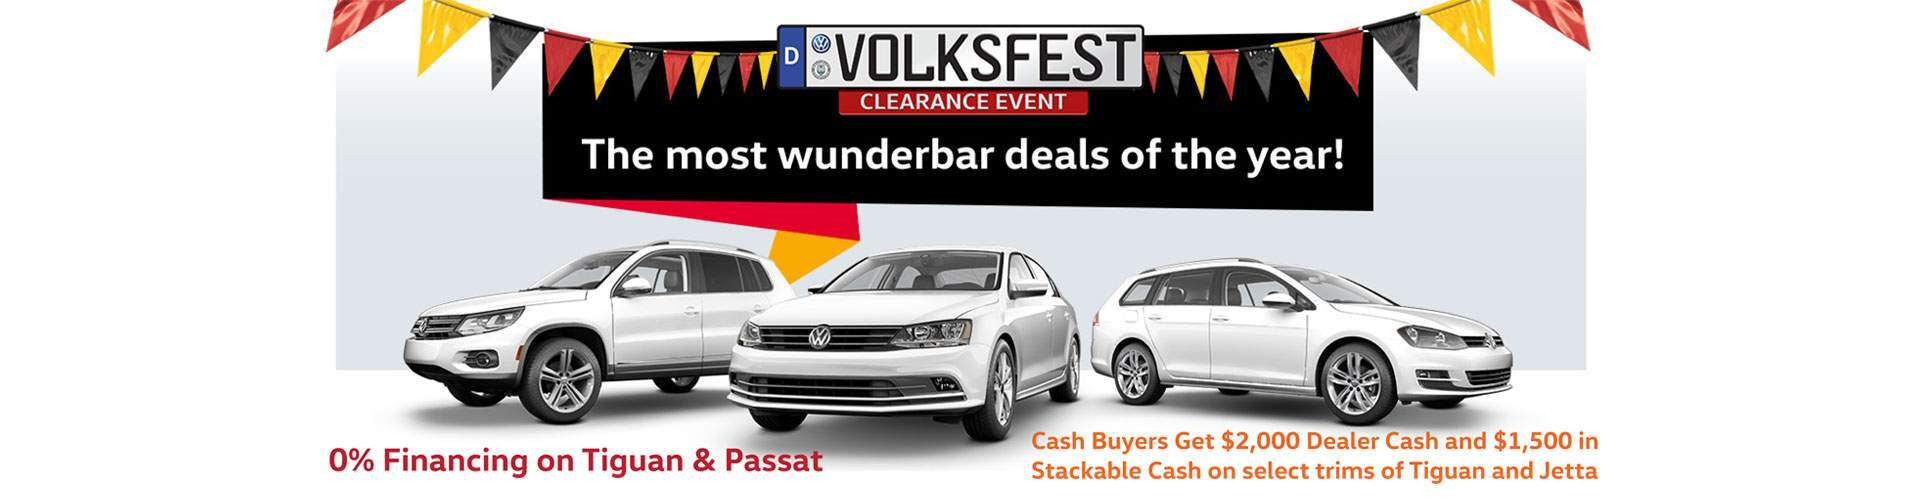 Volkfest Clearance Event